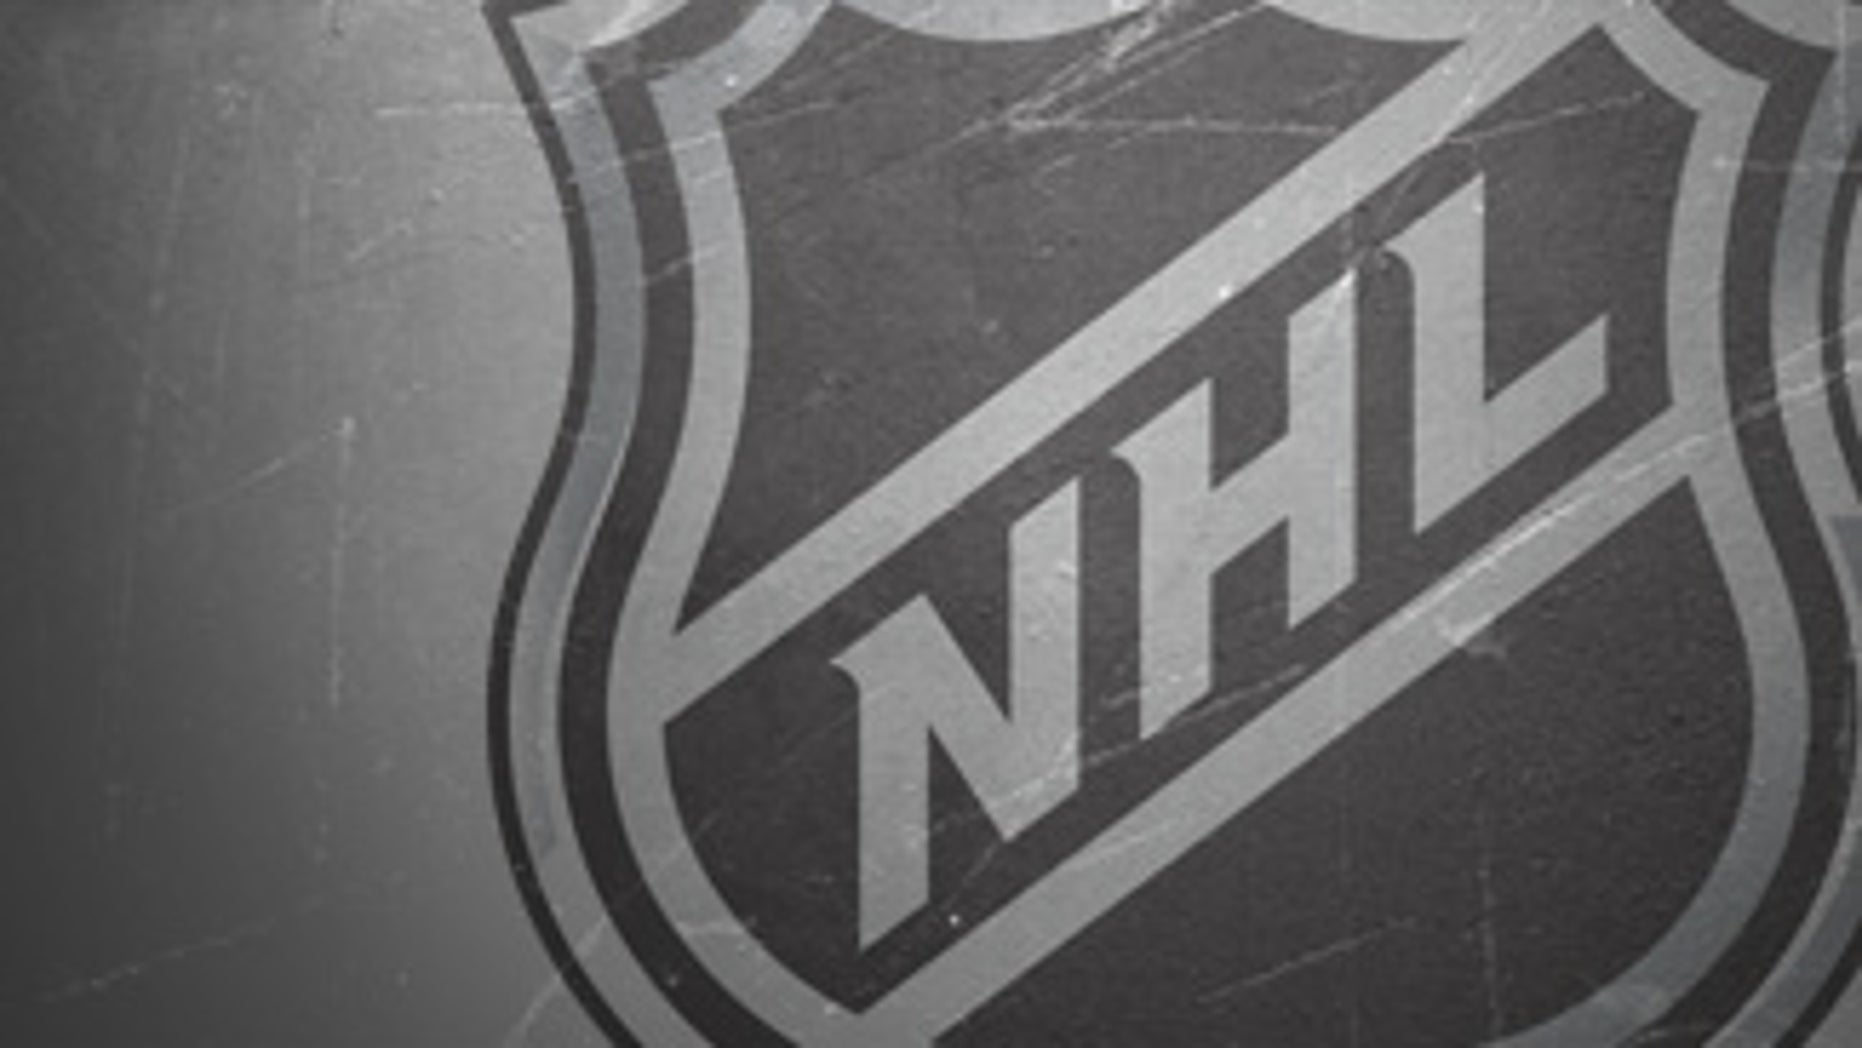 NHL clubs demonstrate their commitment to sustainability through